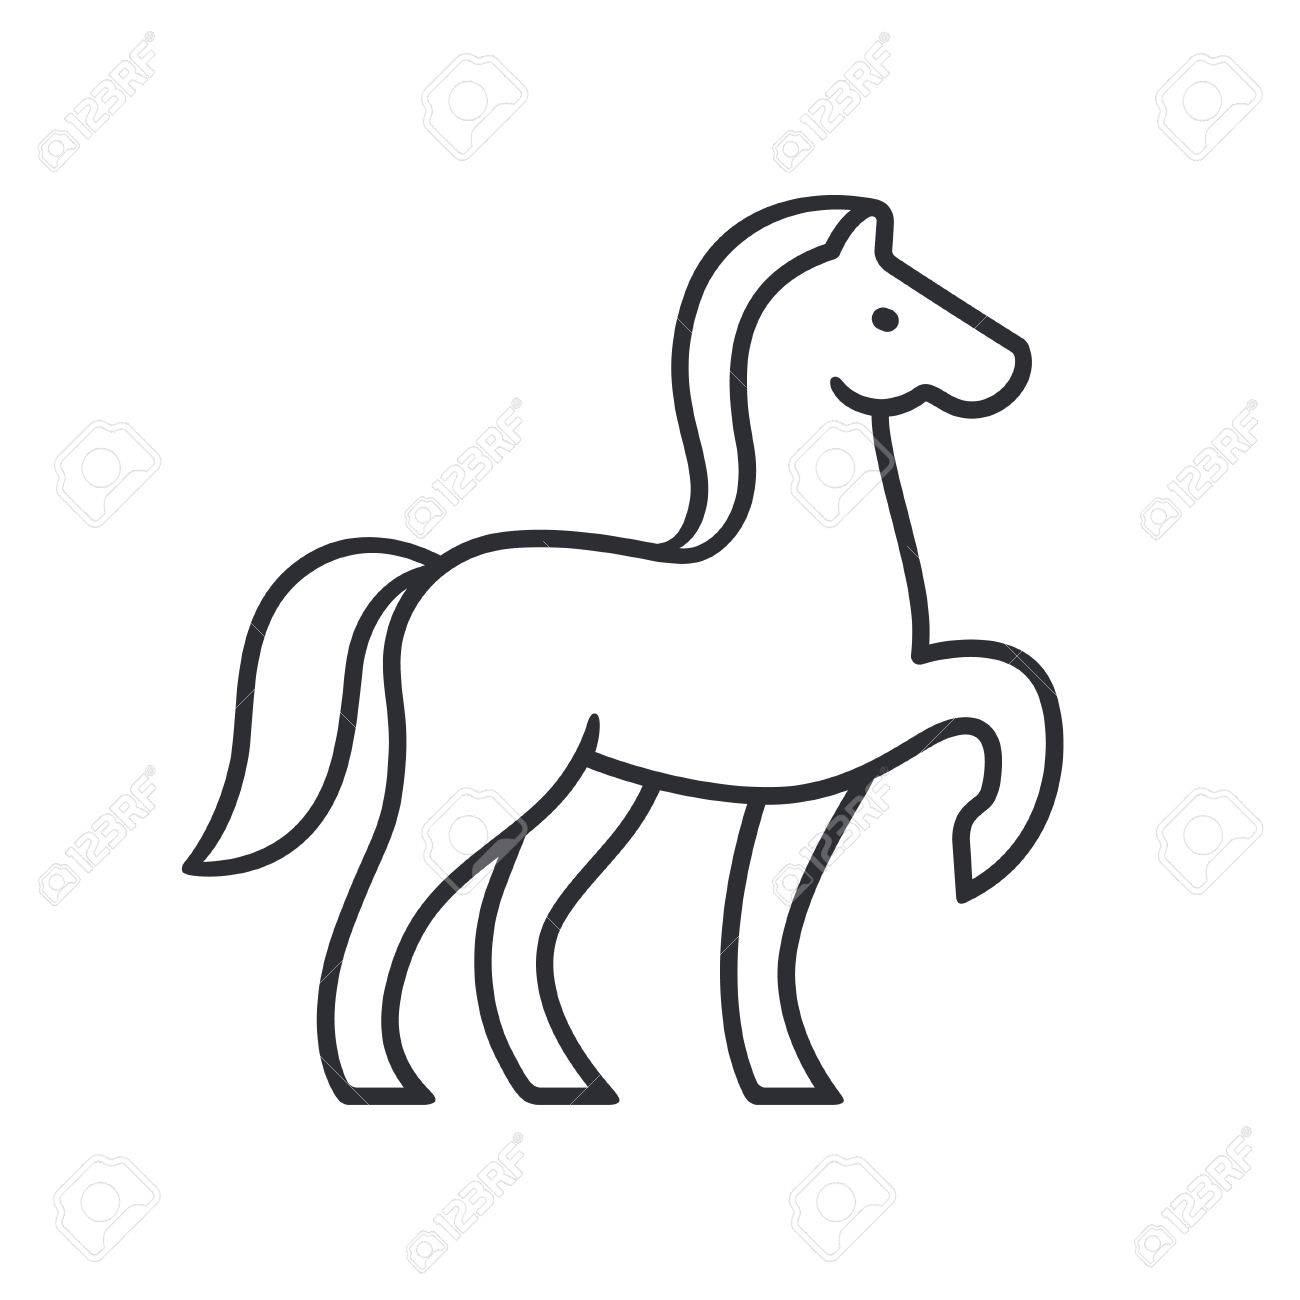 1300x1300 Horse Silhouette Outline Jumping Horse Outline Free